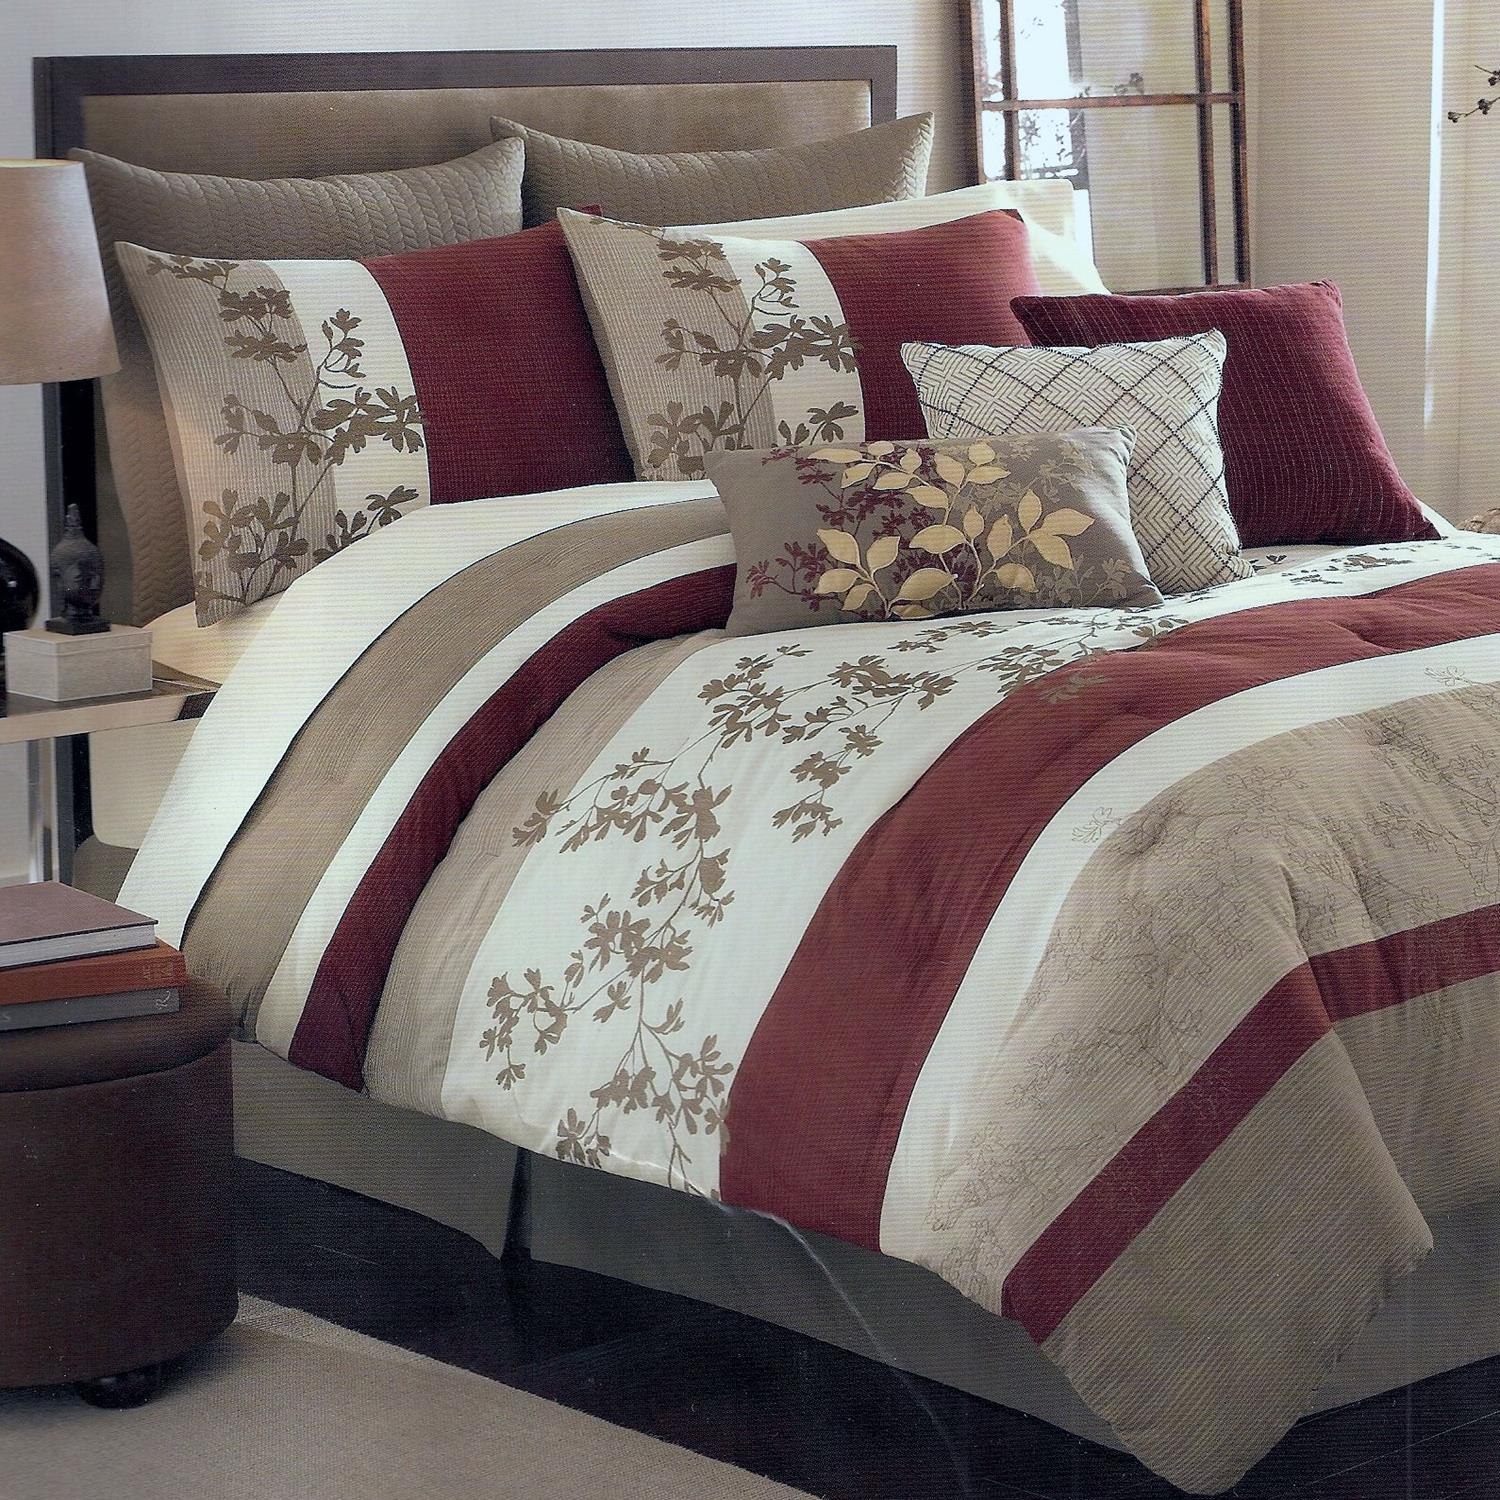 sagamore khaki oversize king 8 piece comforter bed in a bag set new. Black Bedroom Furniture Sets. Home Design Ideas